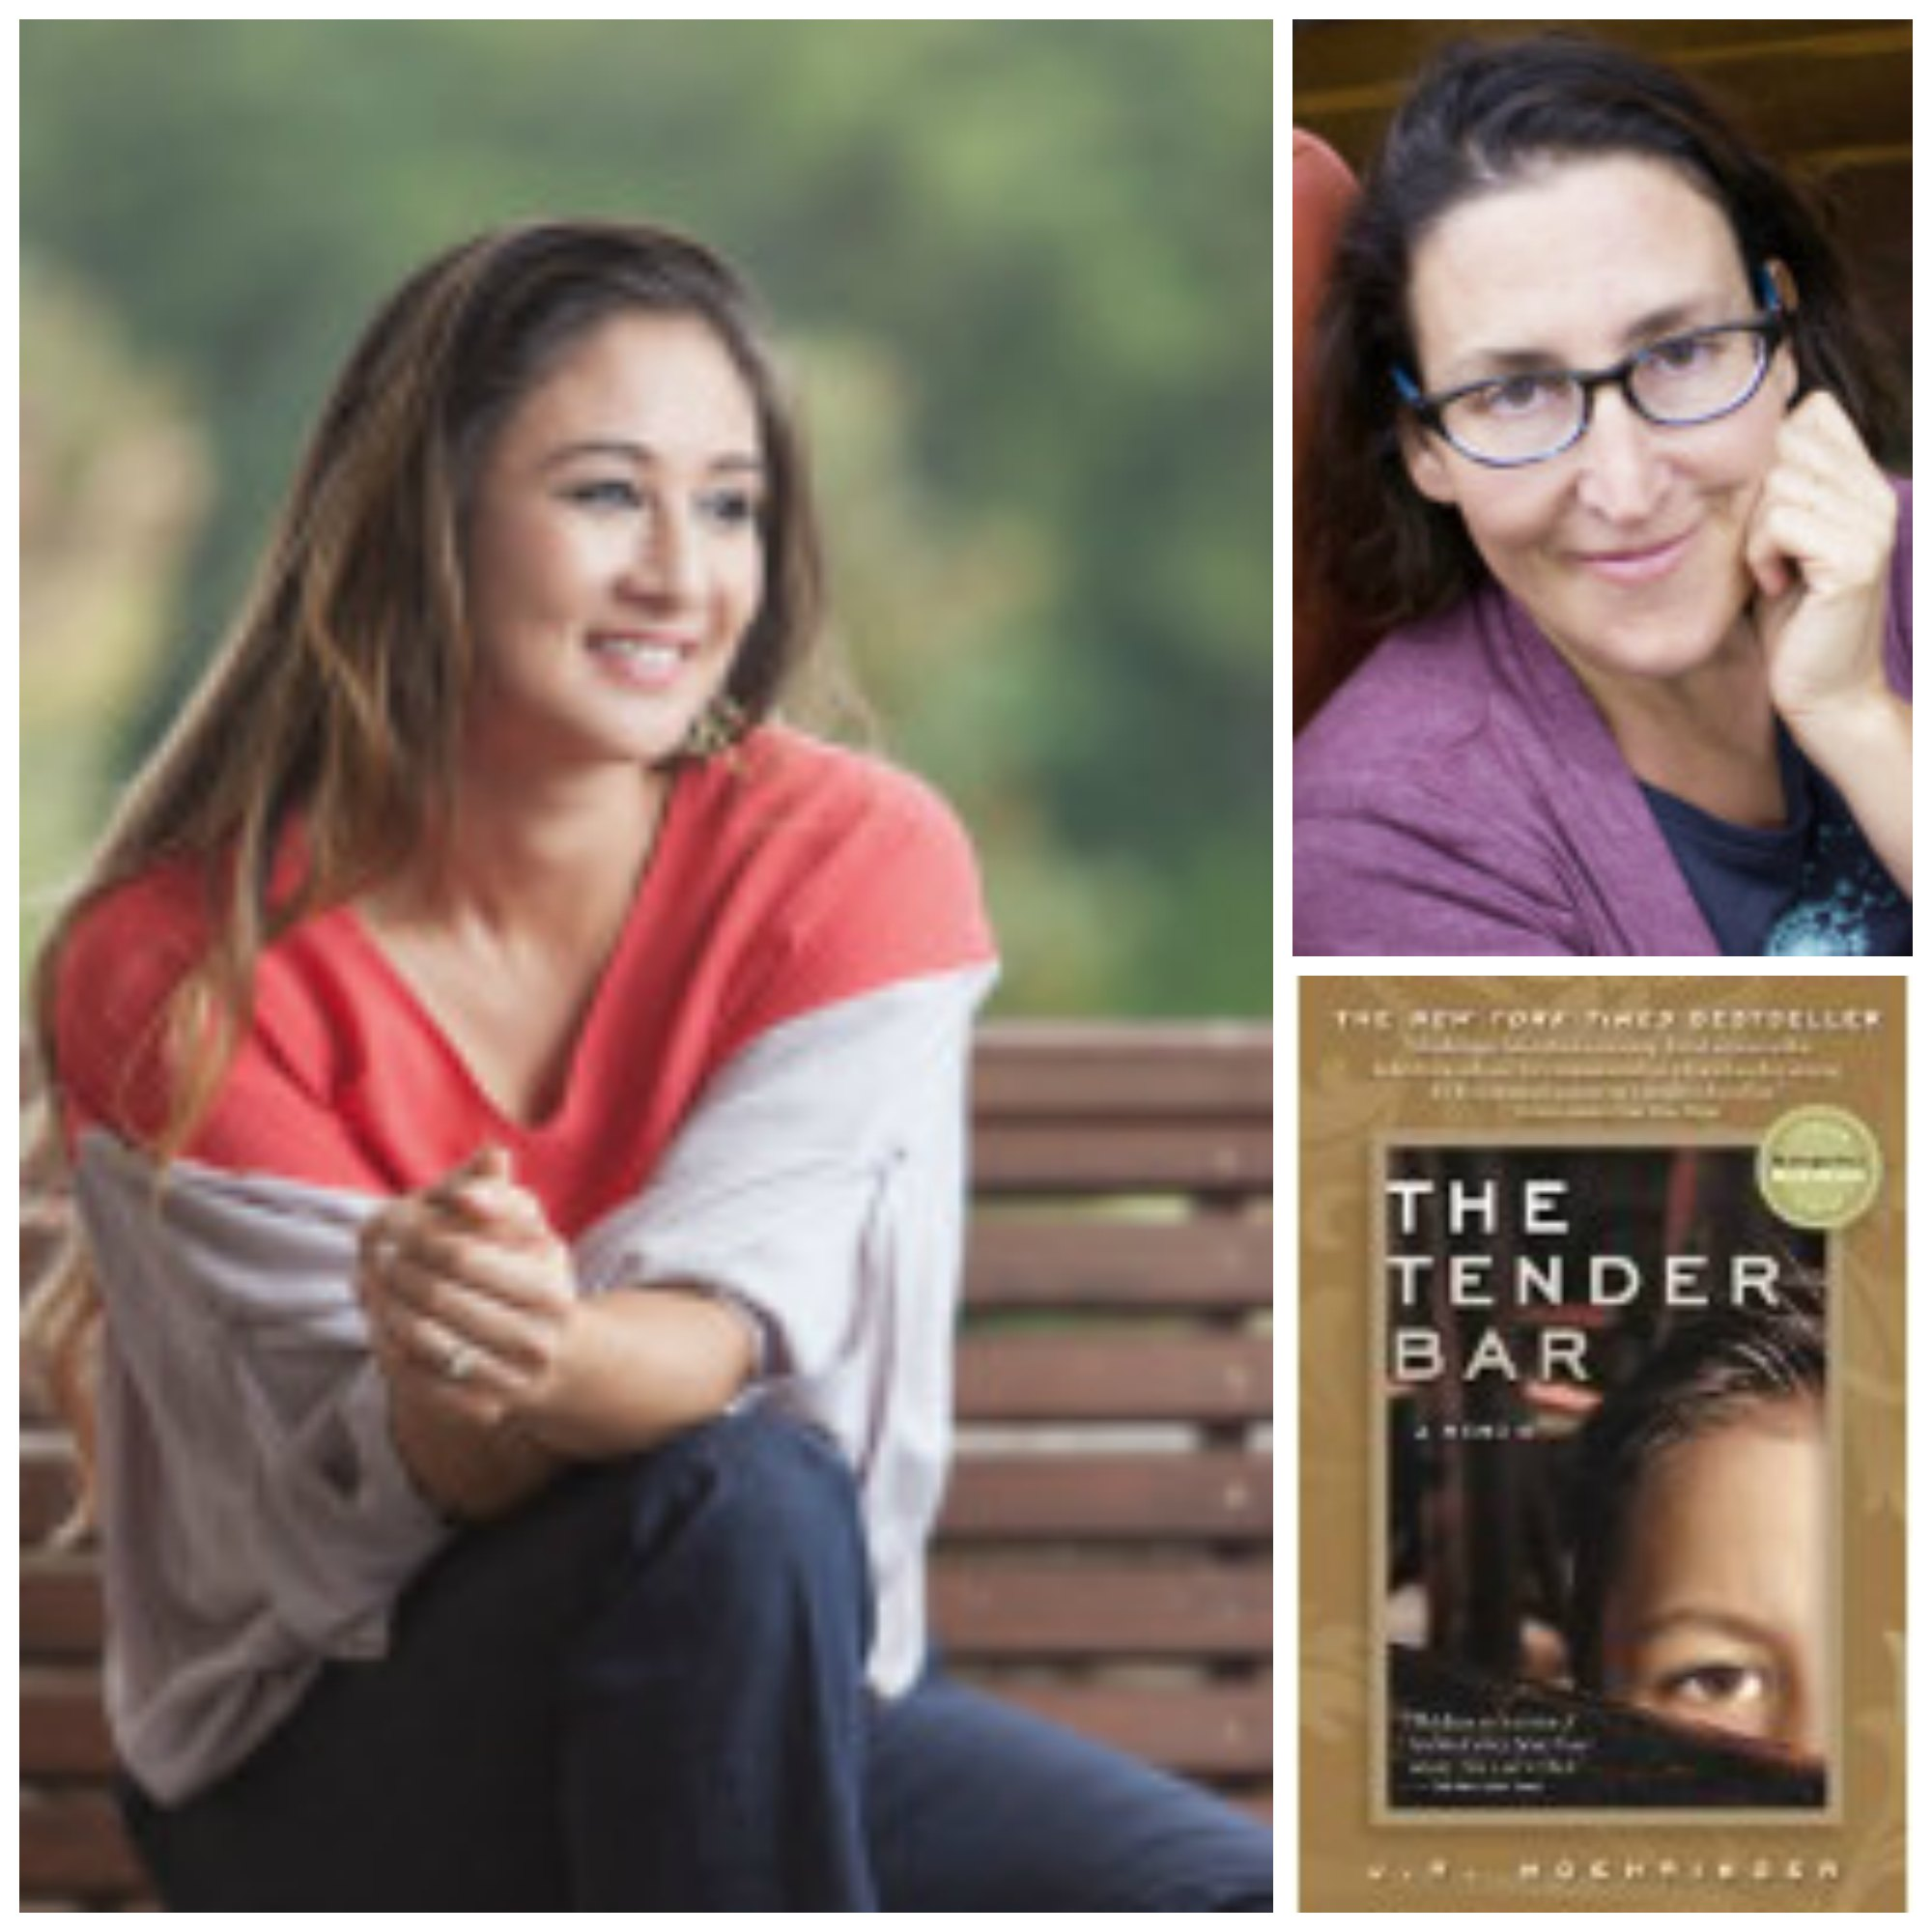 Podcast Interview with Kim Cross and Karen Bender